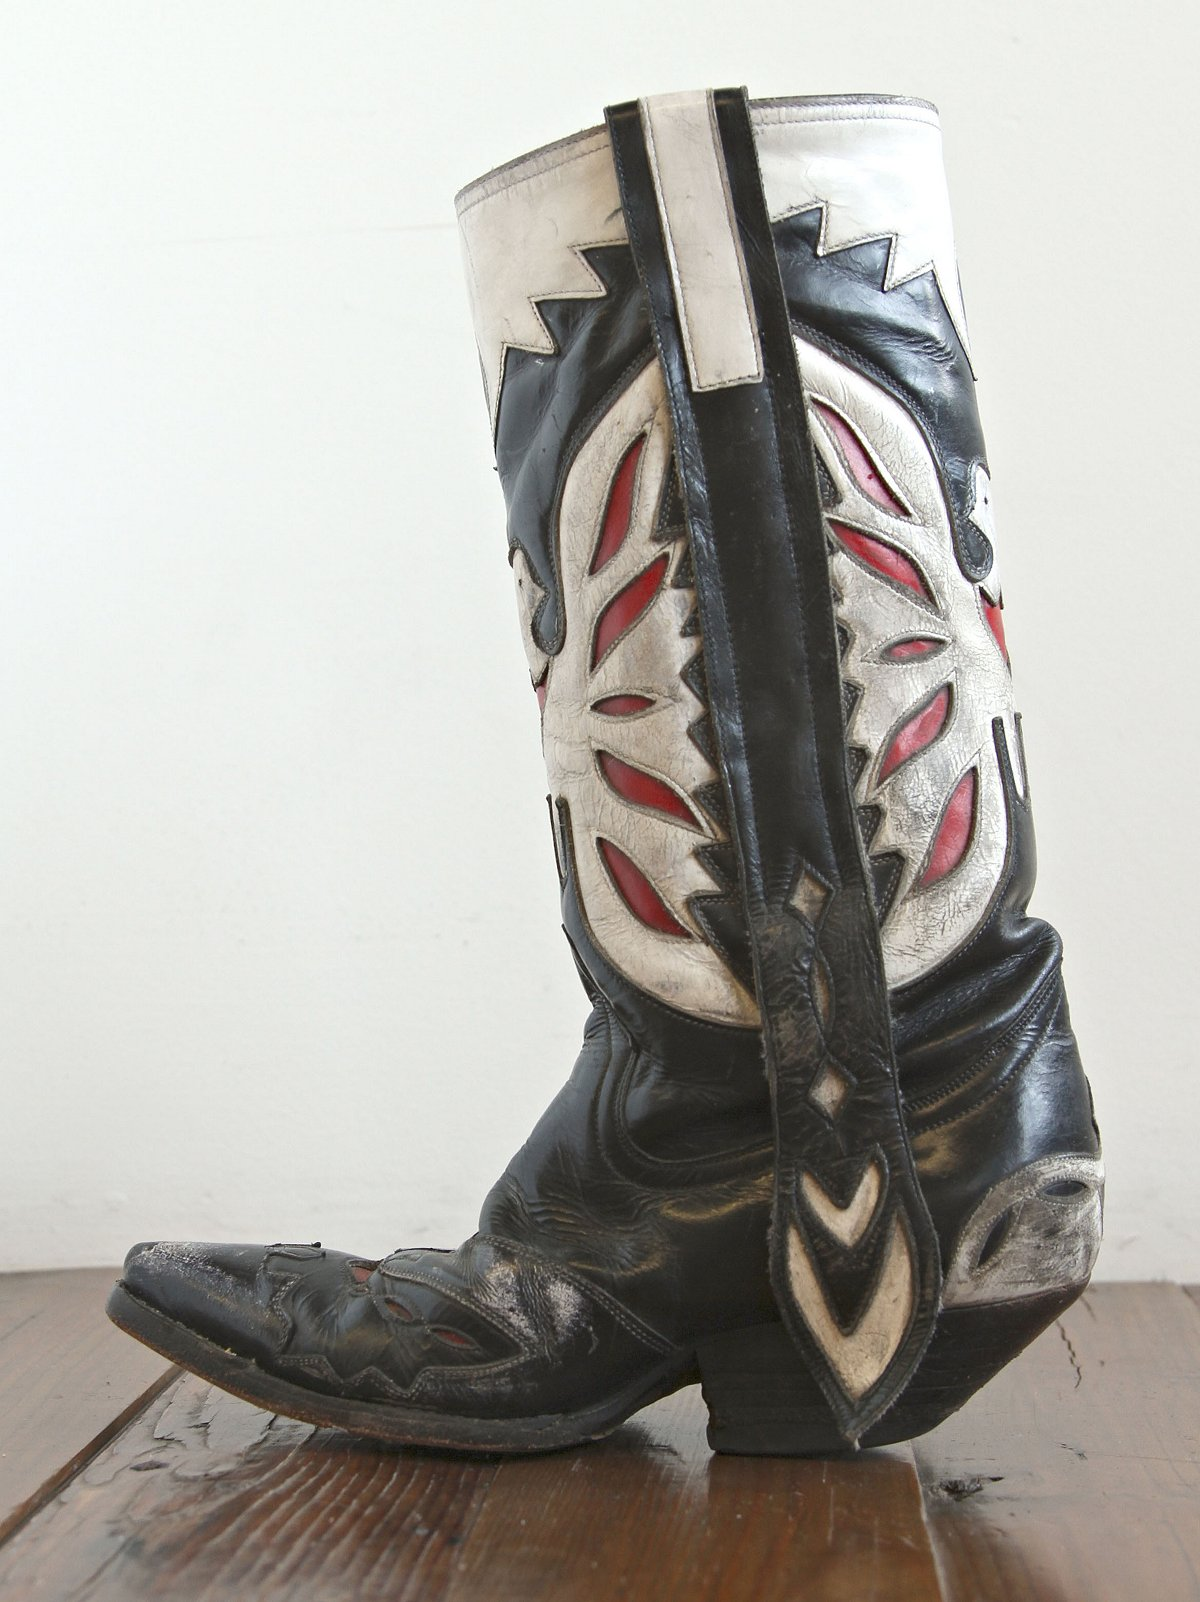 Vintage Black, White, and Red Leather Boots